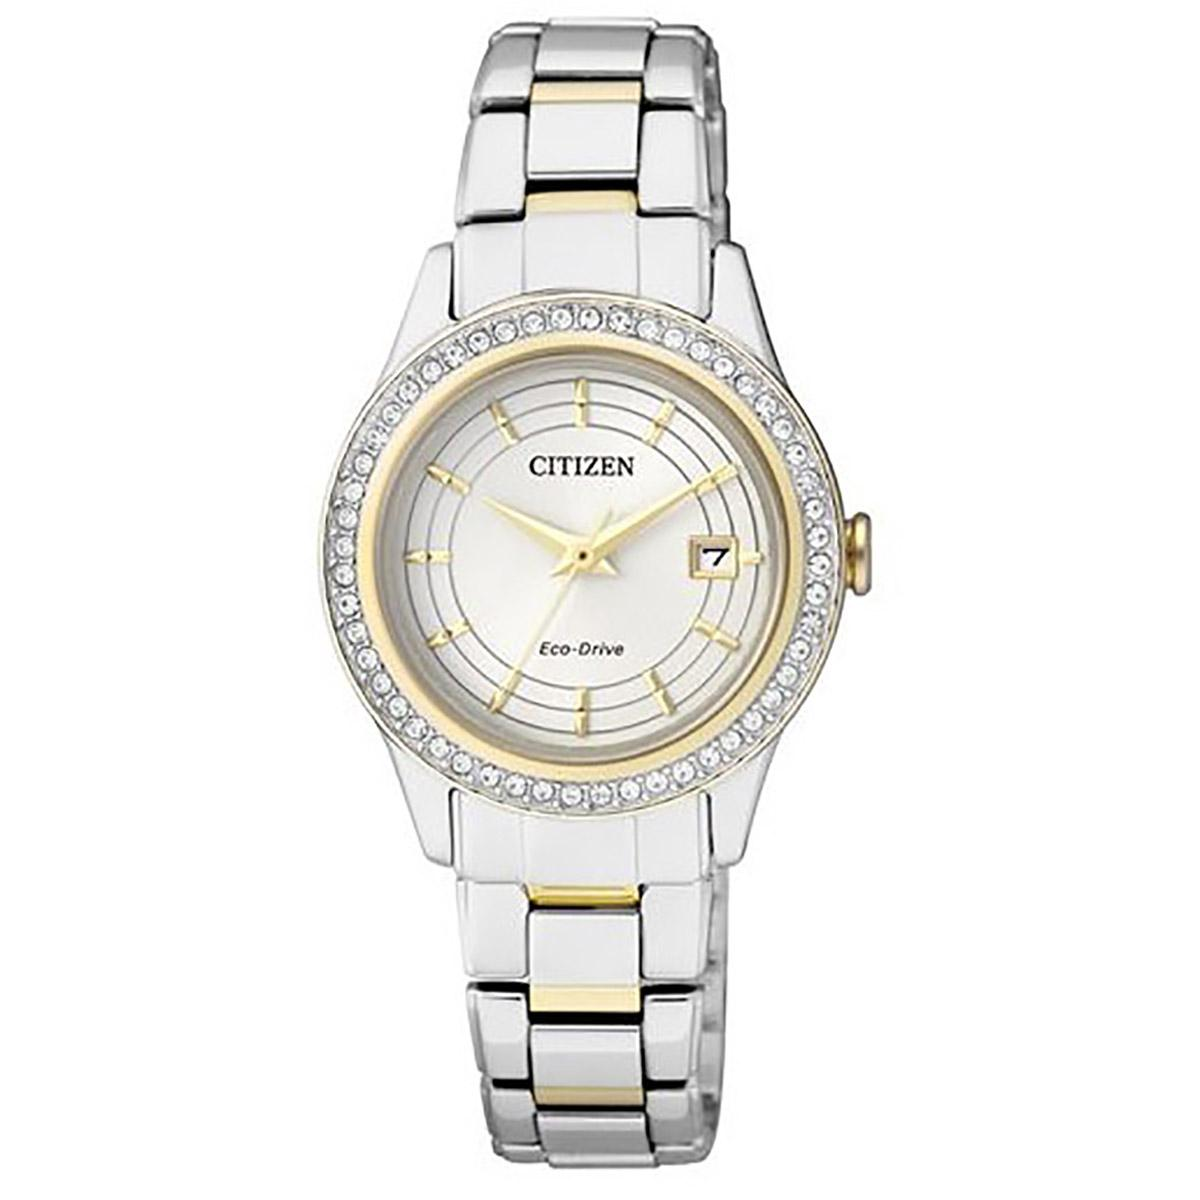 Citizen Citizen Eco Drive Multicolored Stainless Steel Case Two Tone Stainless Steel Bracelet Ladies Fe1124 82A For Sale Online